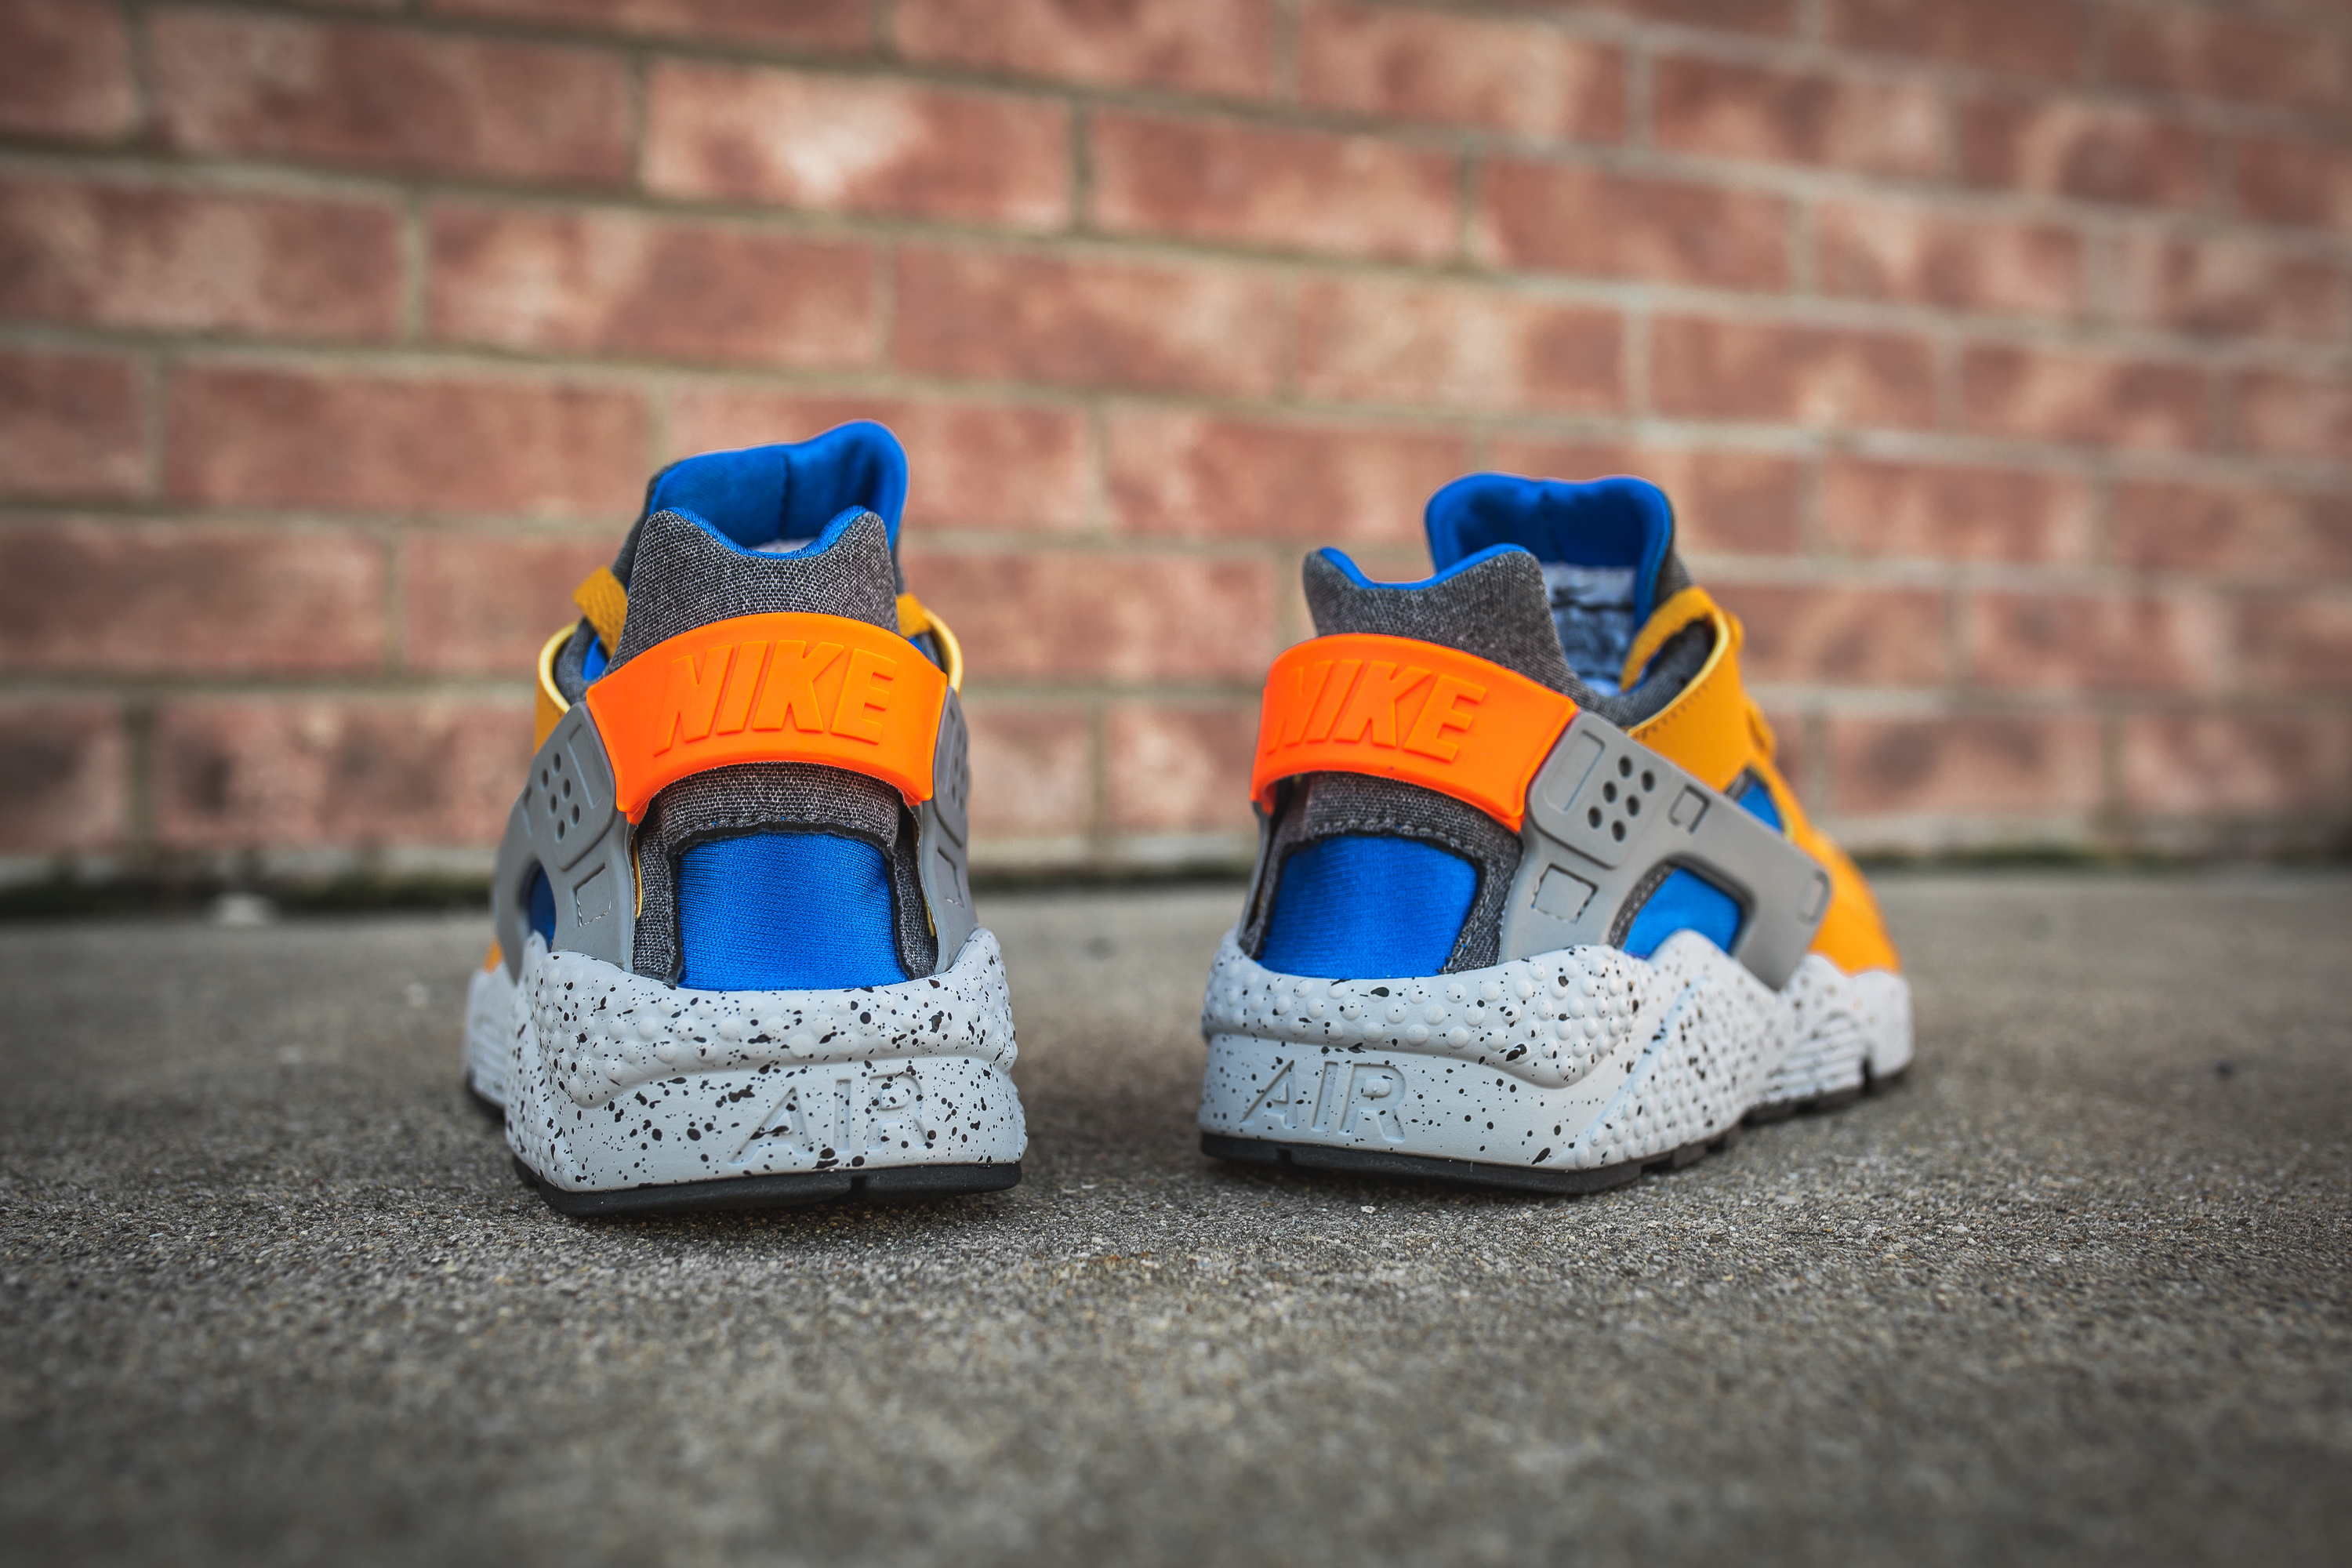 nike air huarache run se Or leaf hyper cobalt 852628 700 8